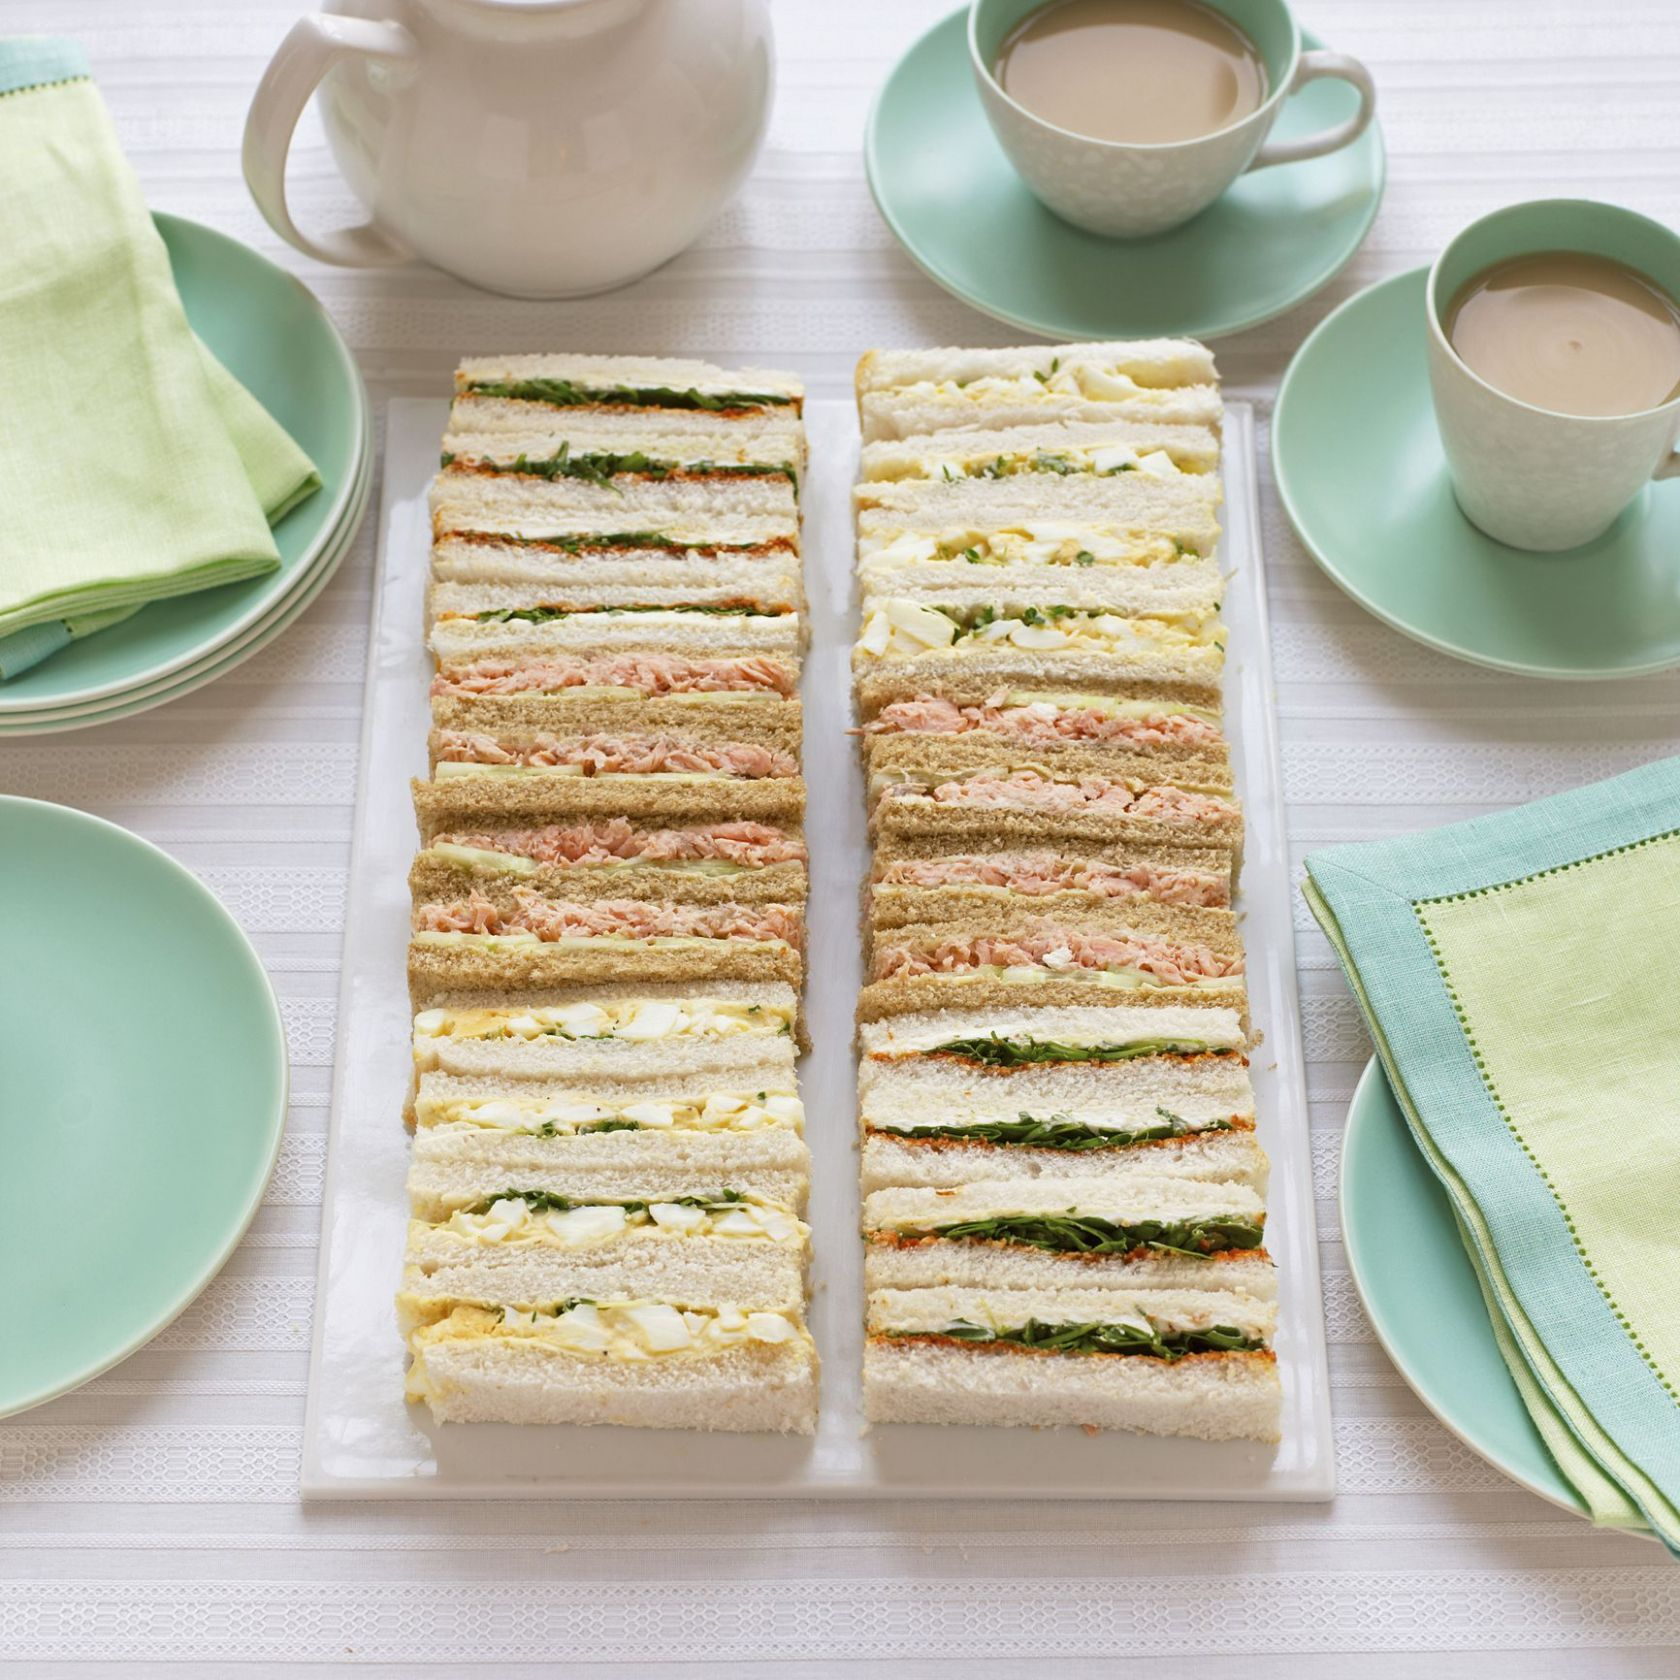 Tea Sandwich Recipes for Kids' Parties